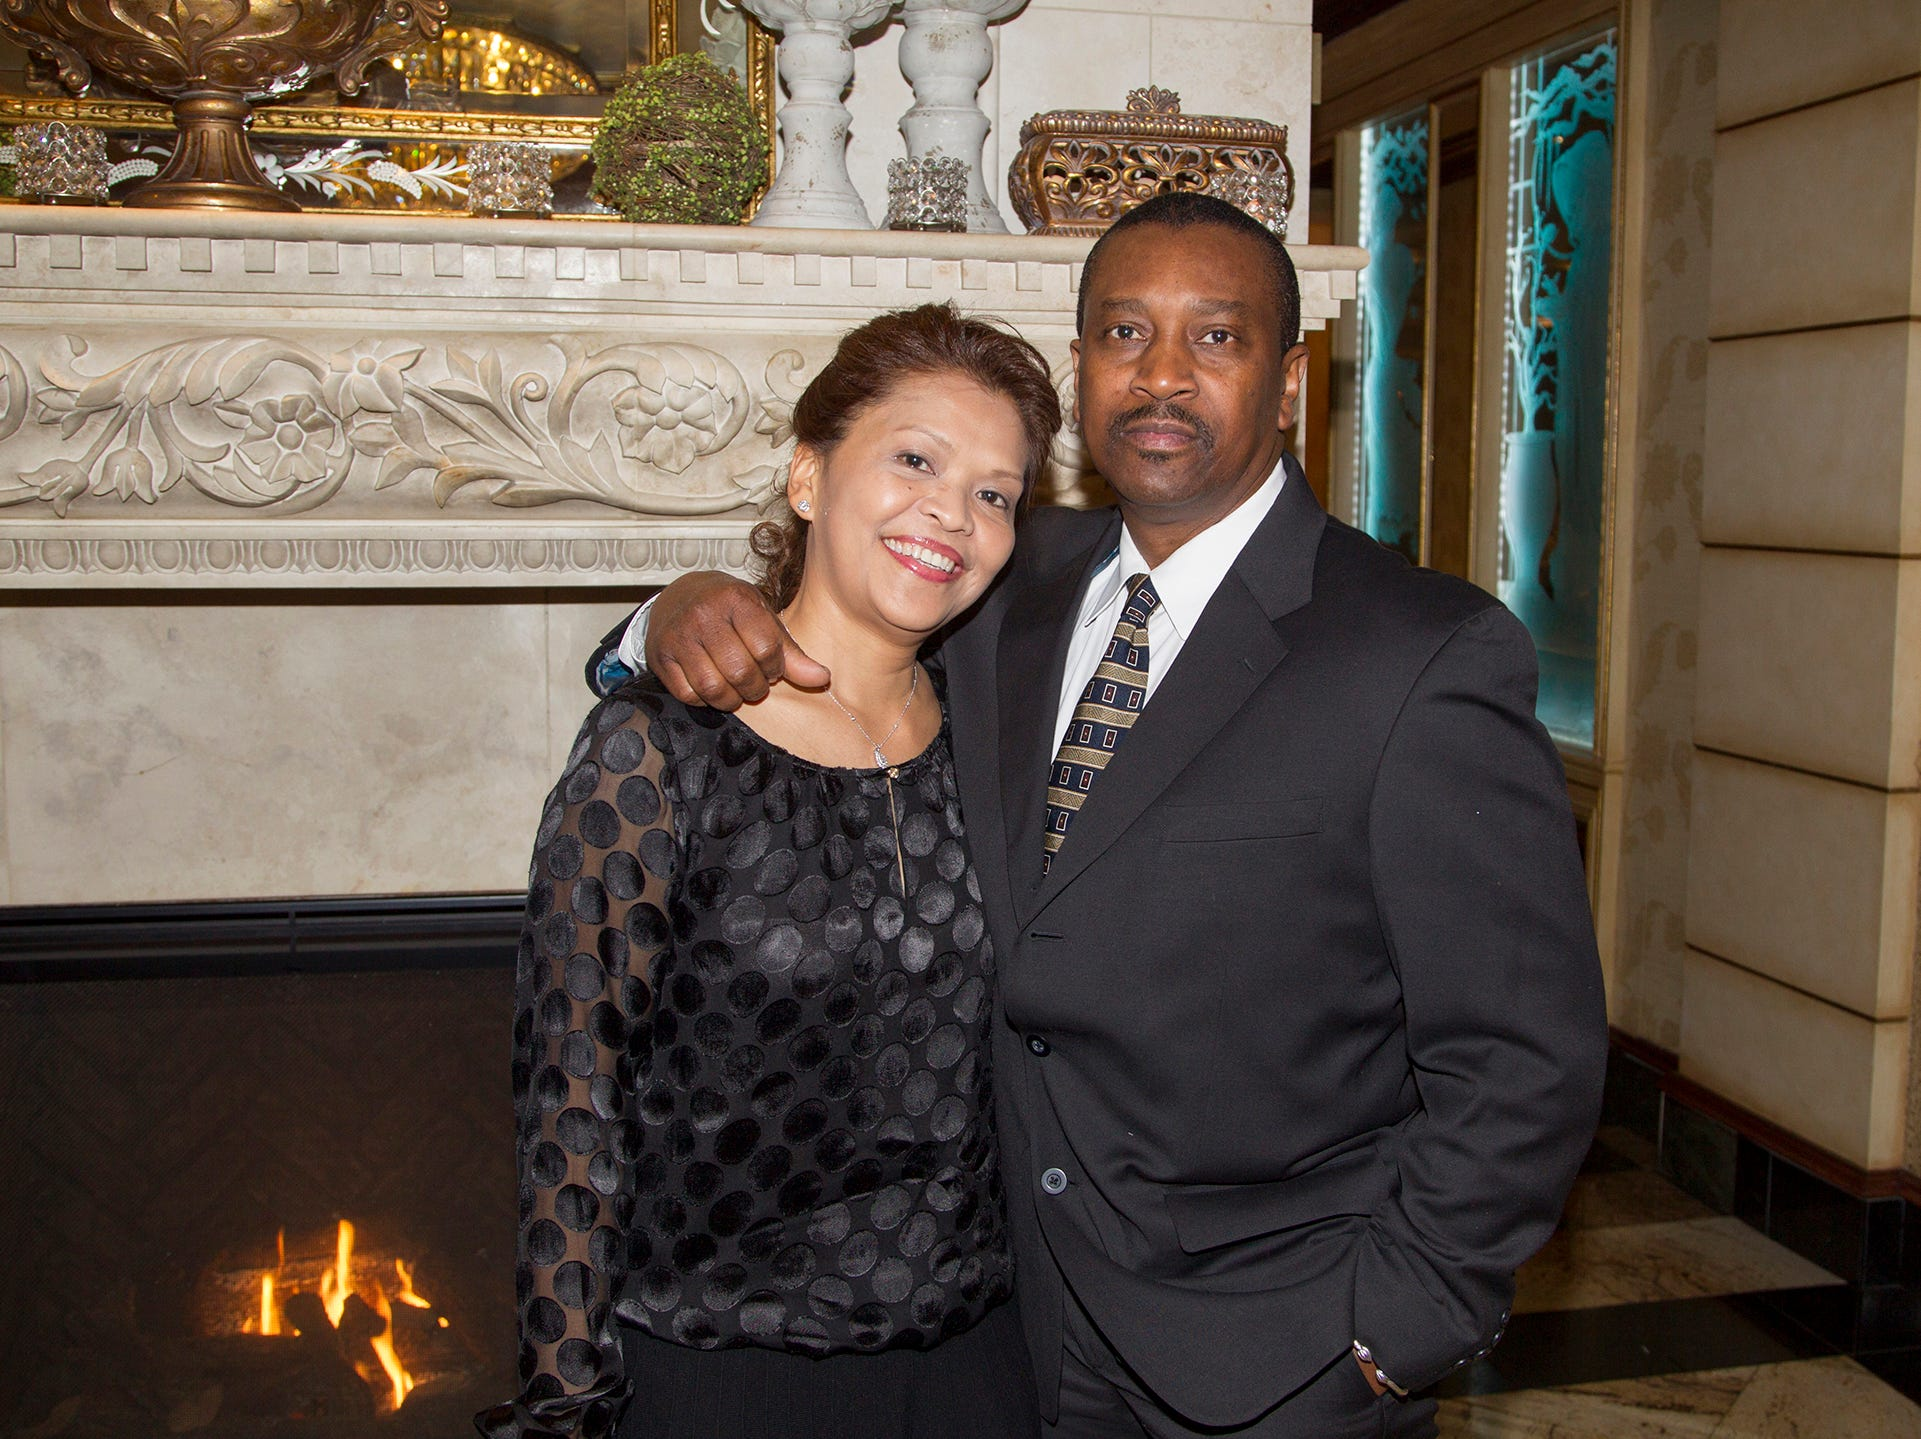 Gemma and Neville Bonitto.Institute for Educational Achievement (IEA) held its annual Dinner Dance at Seasons in Washington Township. 02/02/2019